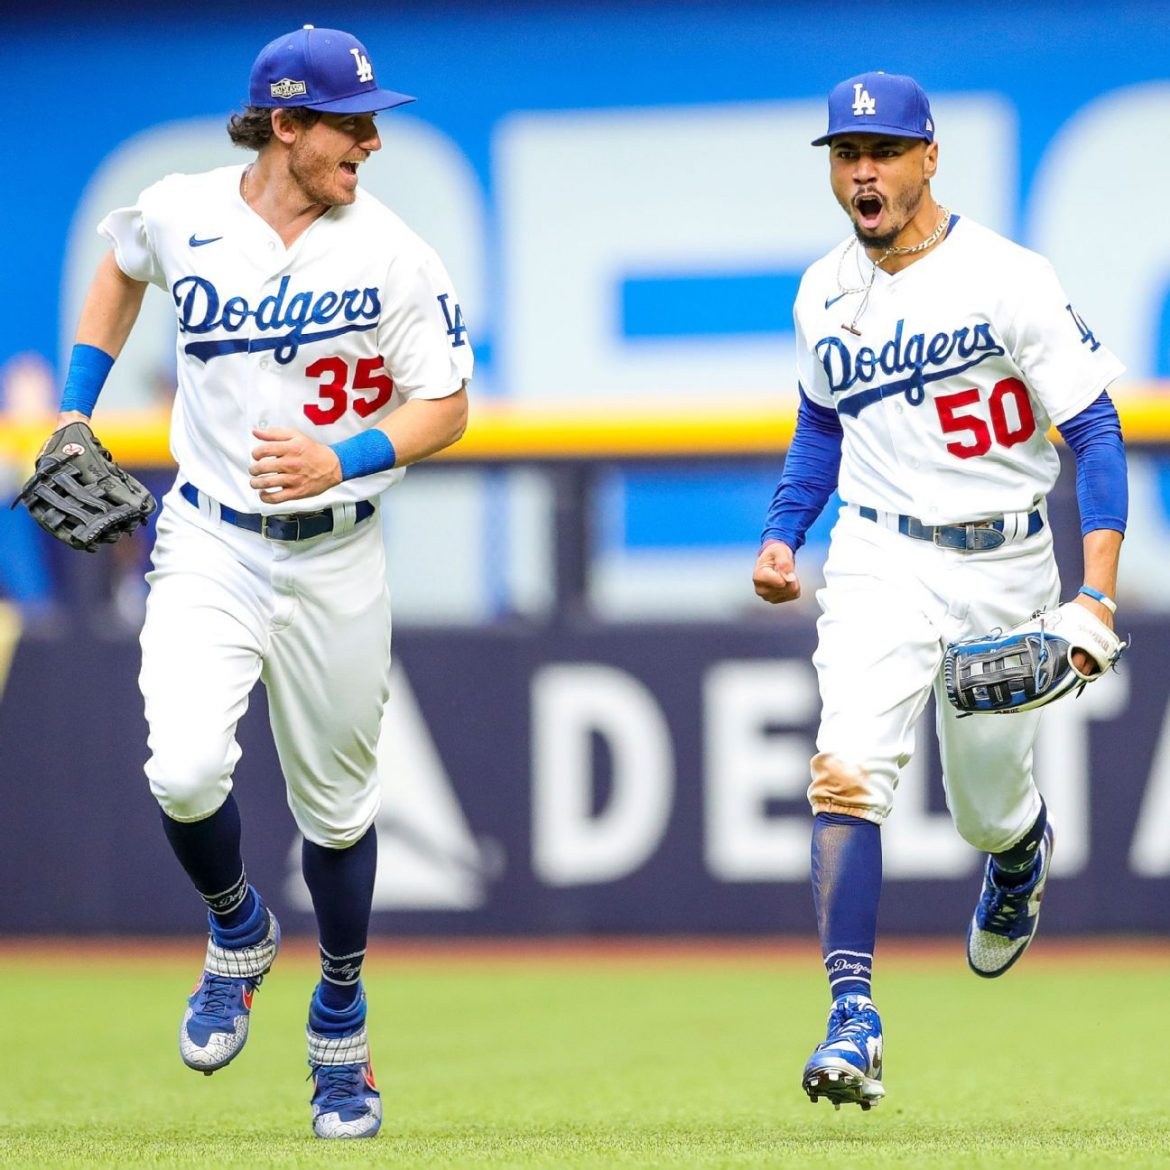 Dodgers' Roberts expects Jansen to close games